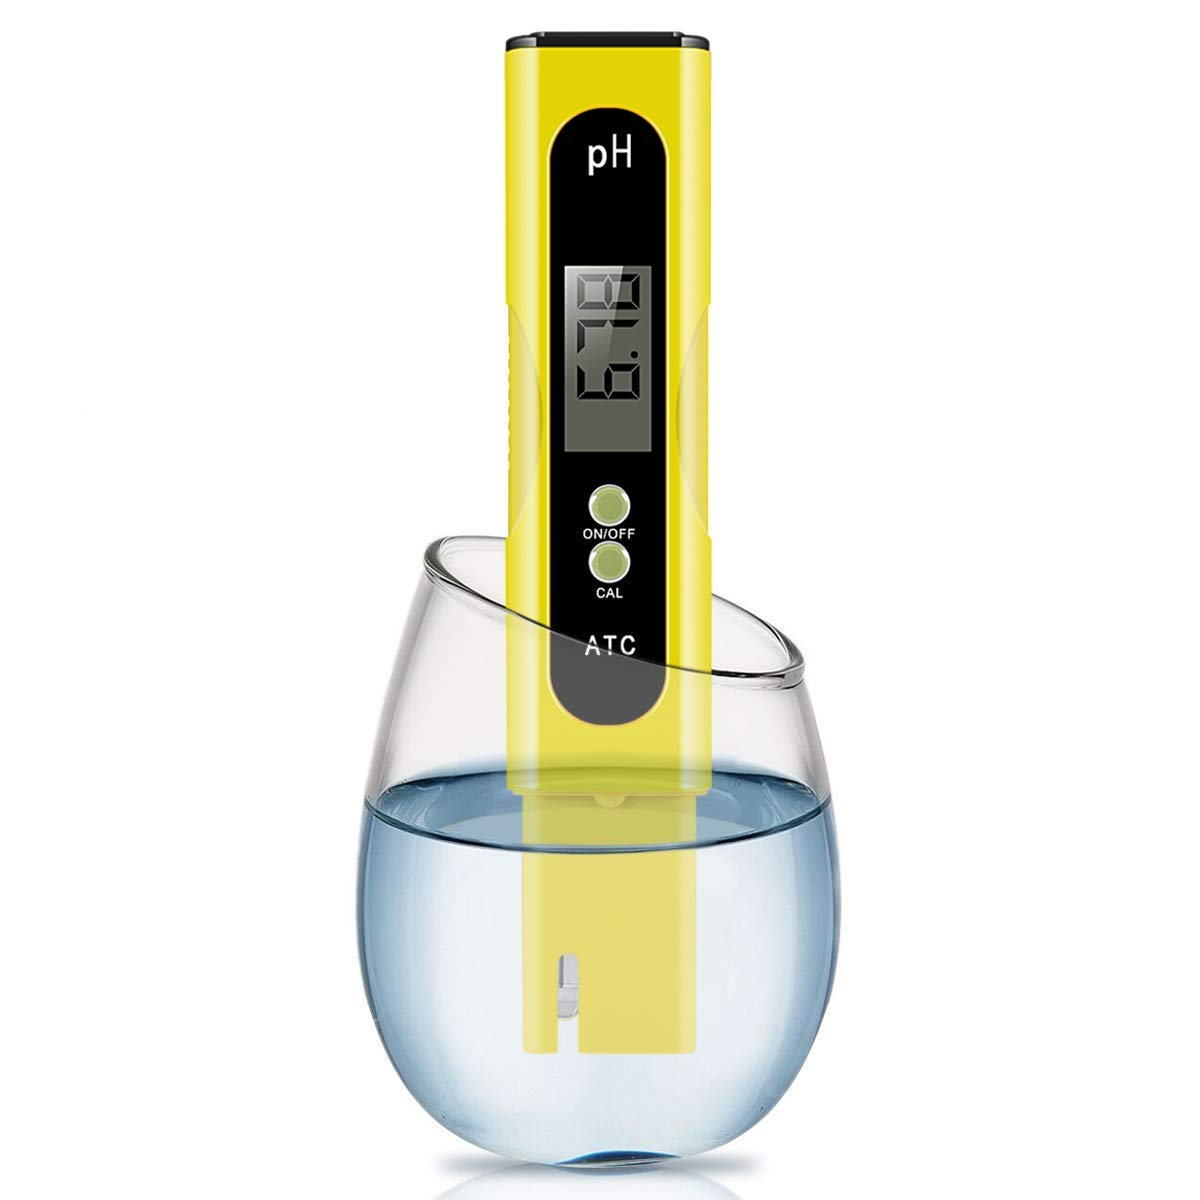 Digital PH Meter, Wellcows PH Meter 0.01 PH High Accuracy Water Quality Tester with 0-14 PH Measurement Range for Household Drinking, Pool and Aquarium Water PH Tester Design with ATC (Yellow)